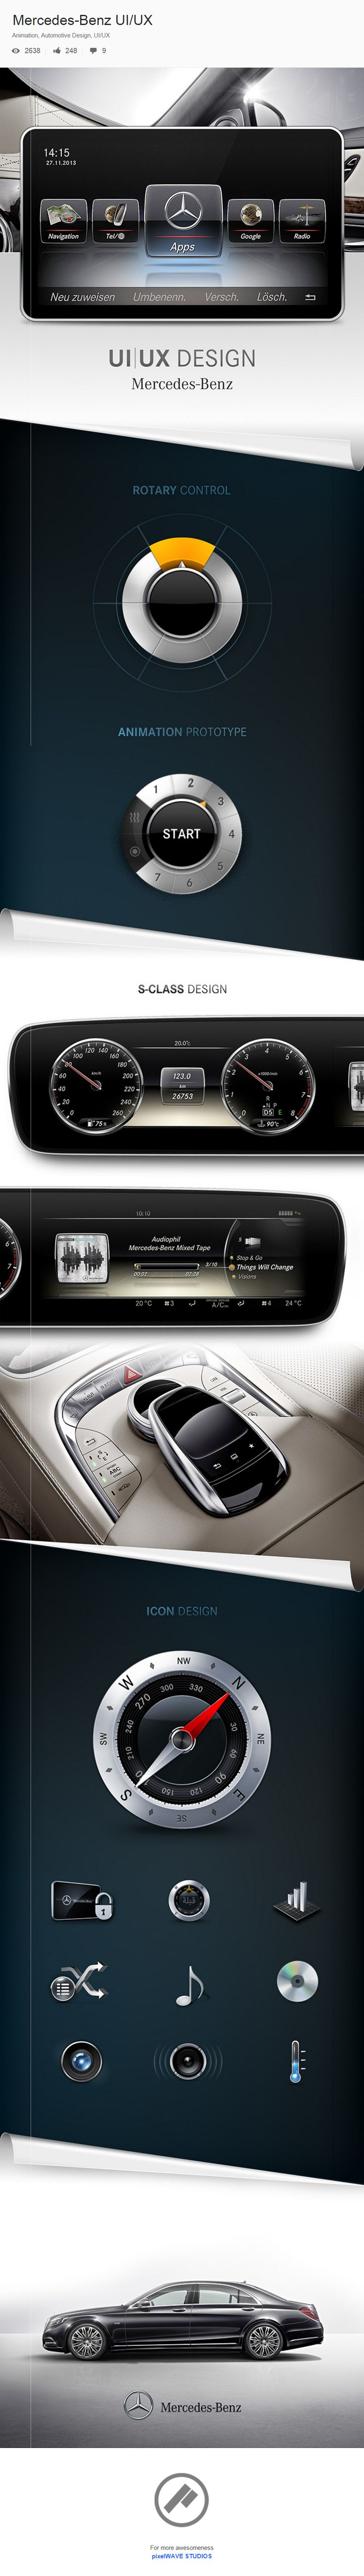 Mercedes-Benz UI/UX, designed by Denny Moritz